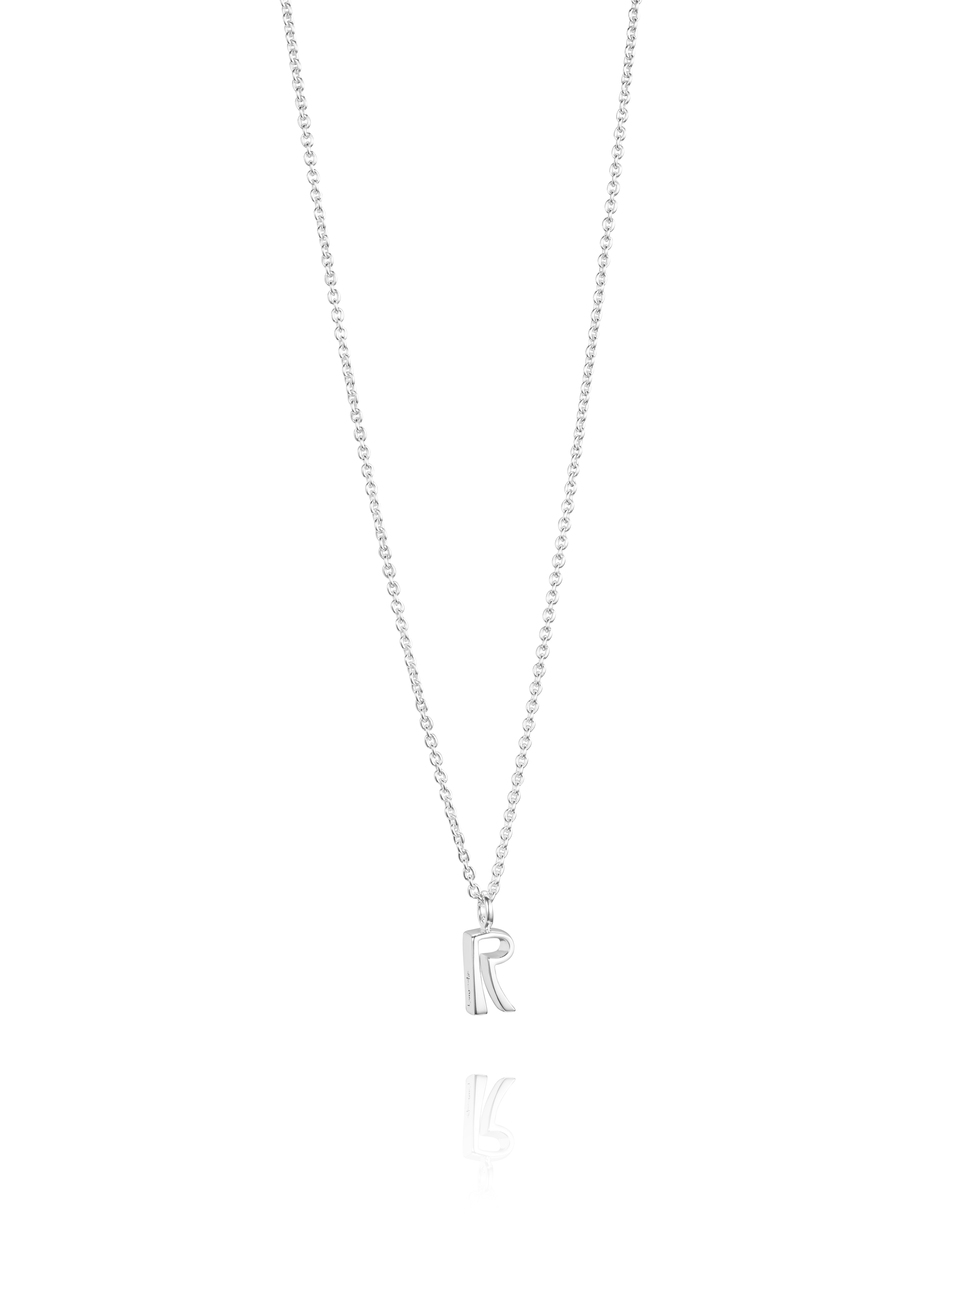 Respect Necklace 11-100-01454(2)